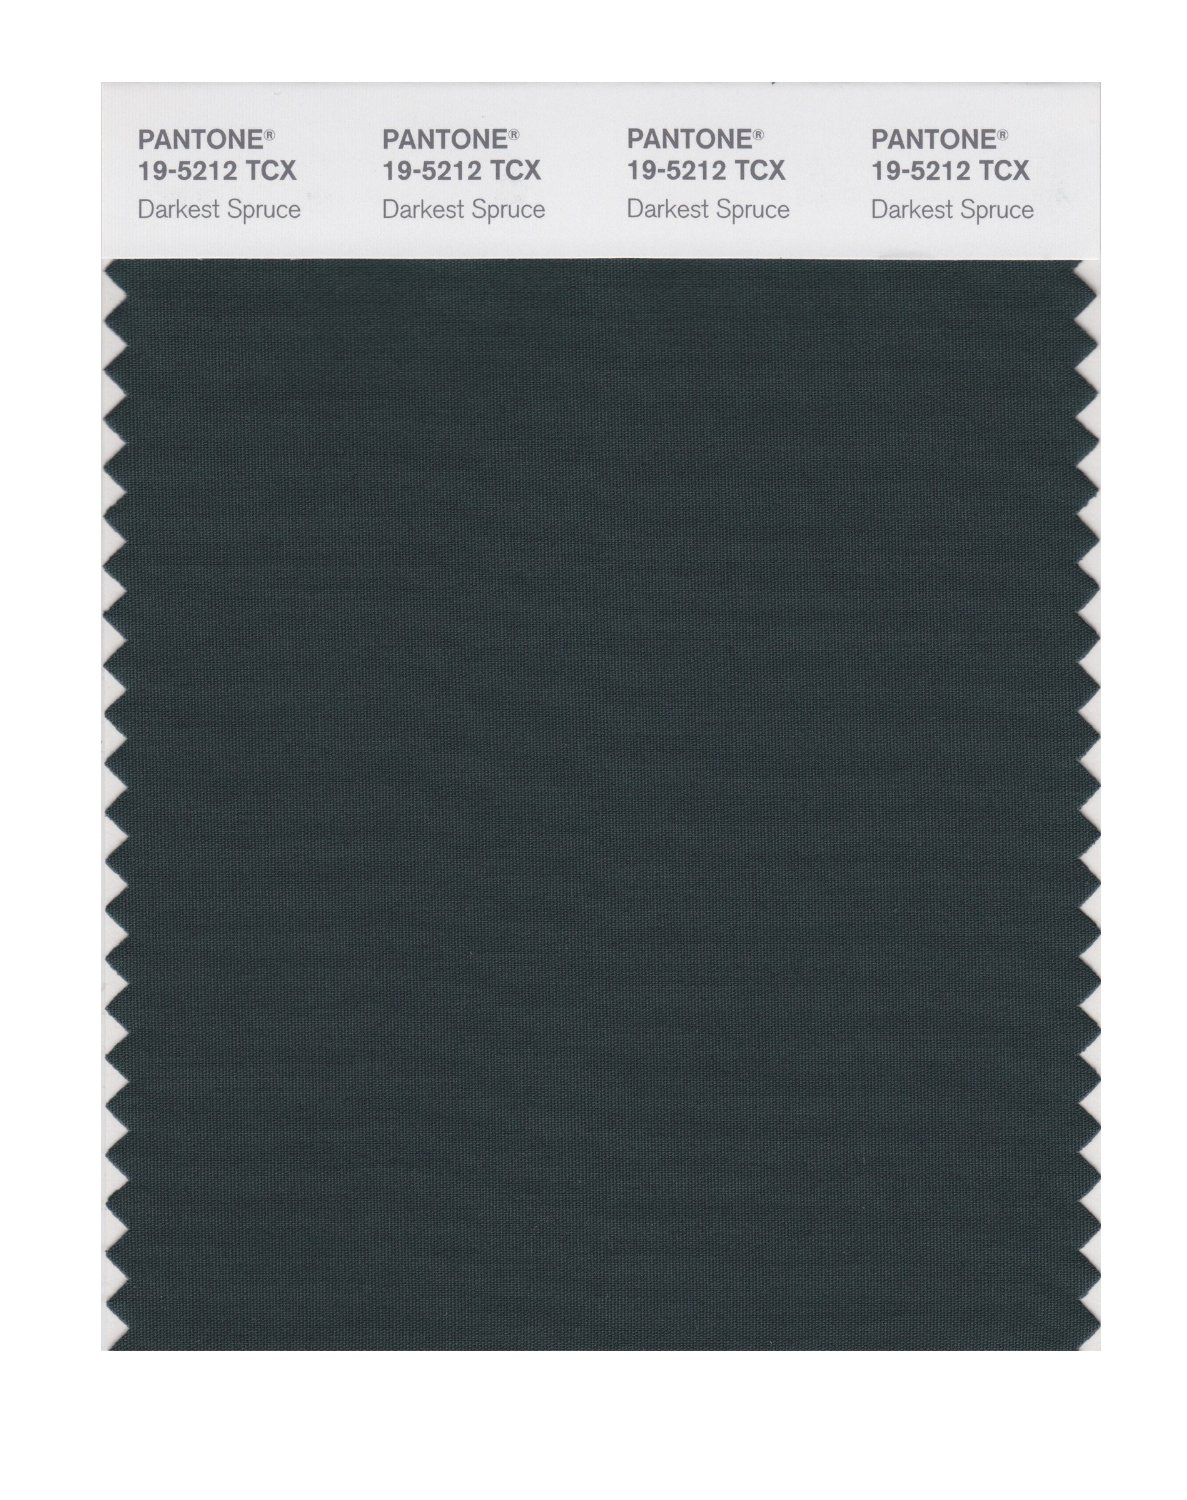 Pantone Smart Swatch 19-5212 Darkest Spruce